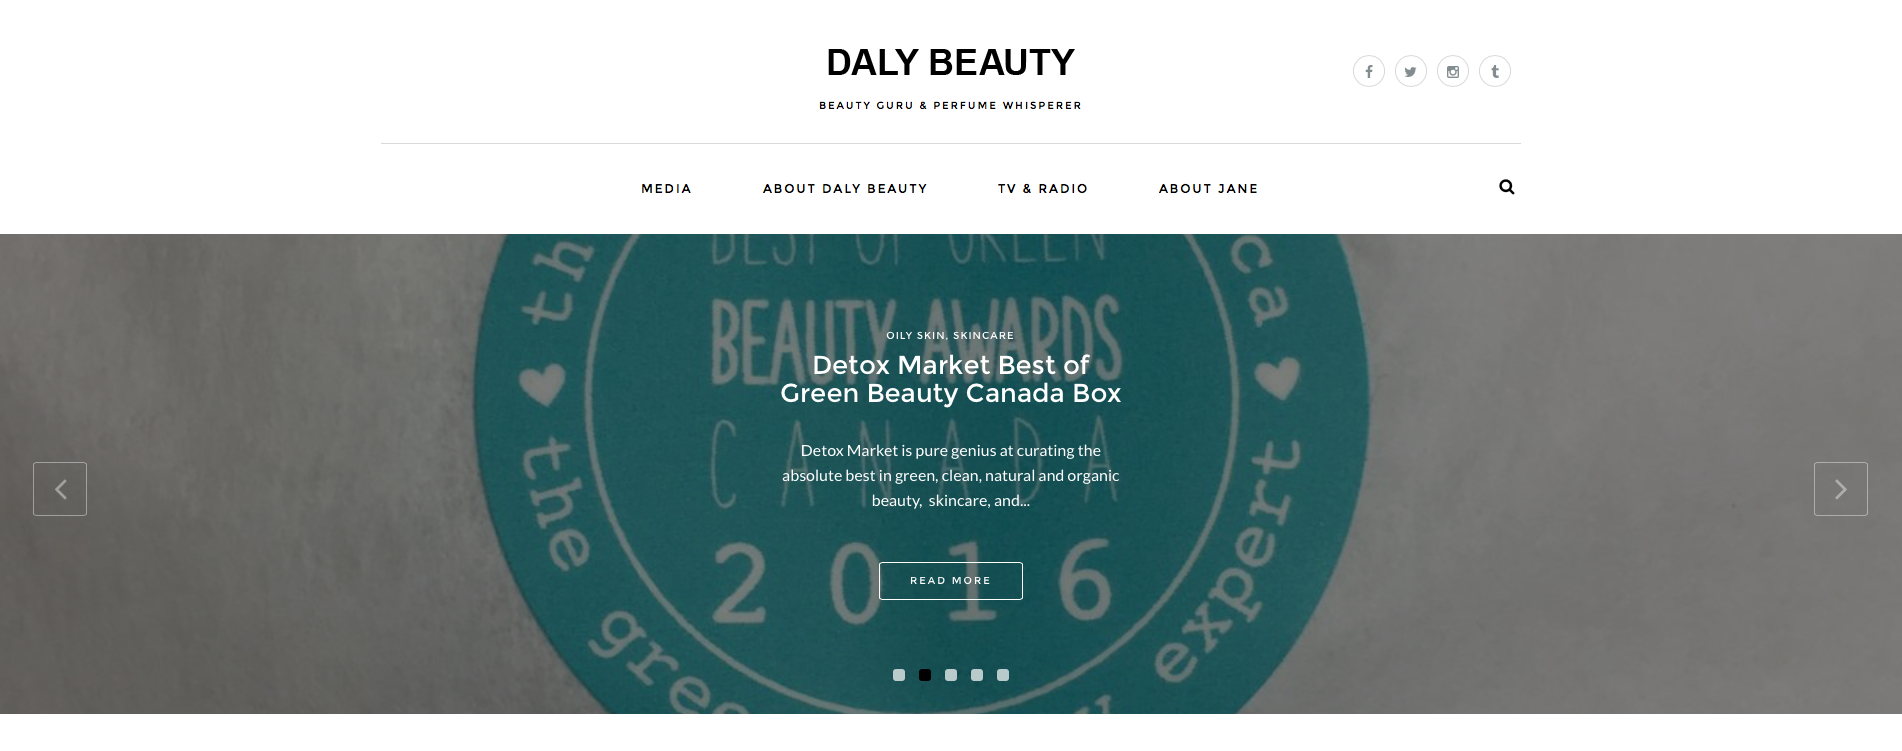 Daly Beauty is one of our favourite Canadian beauty blogs